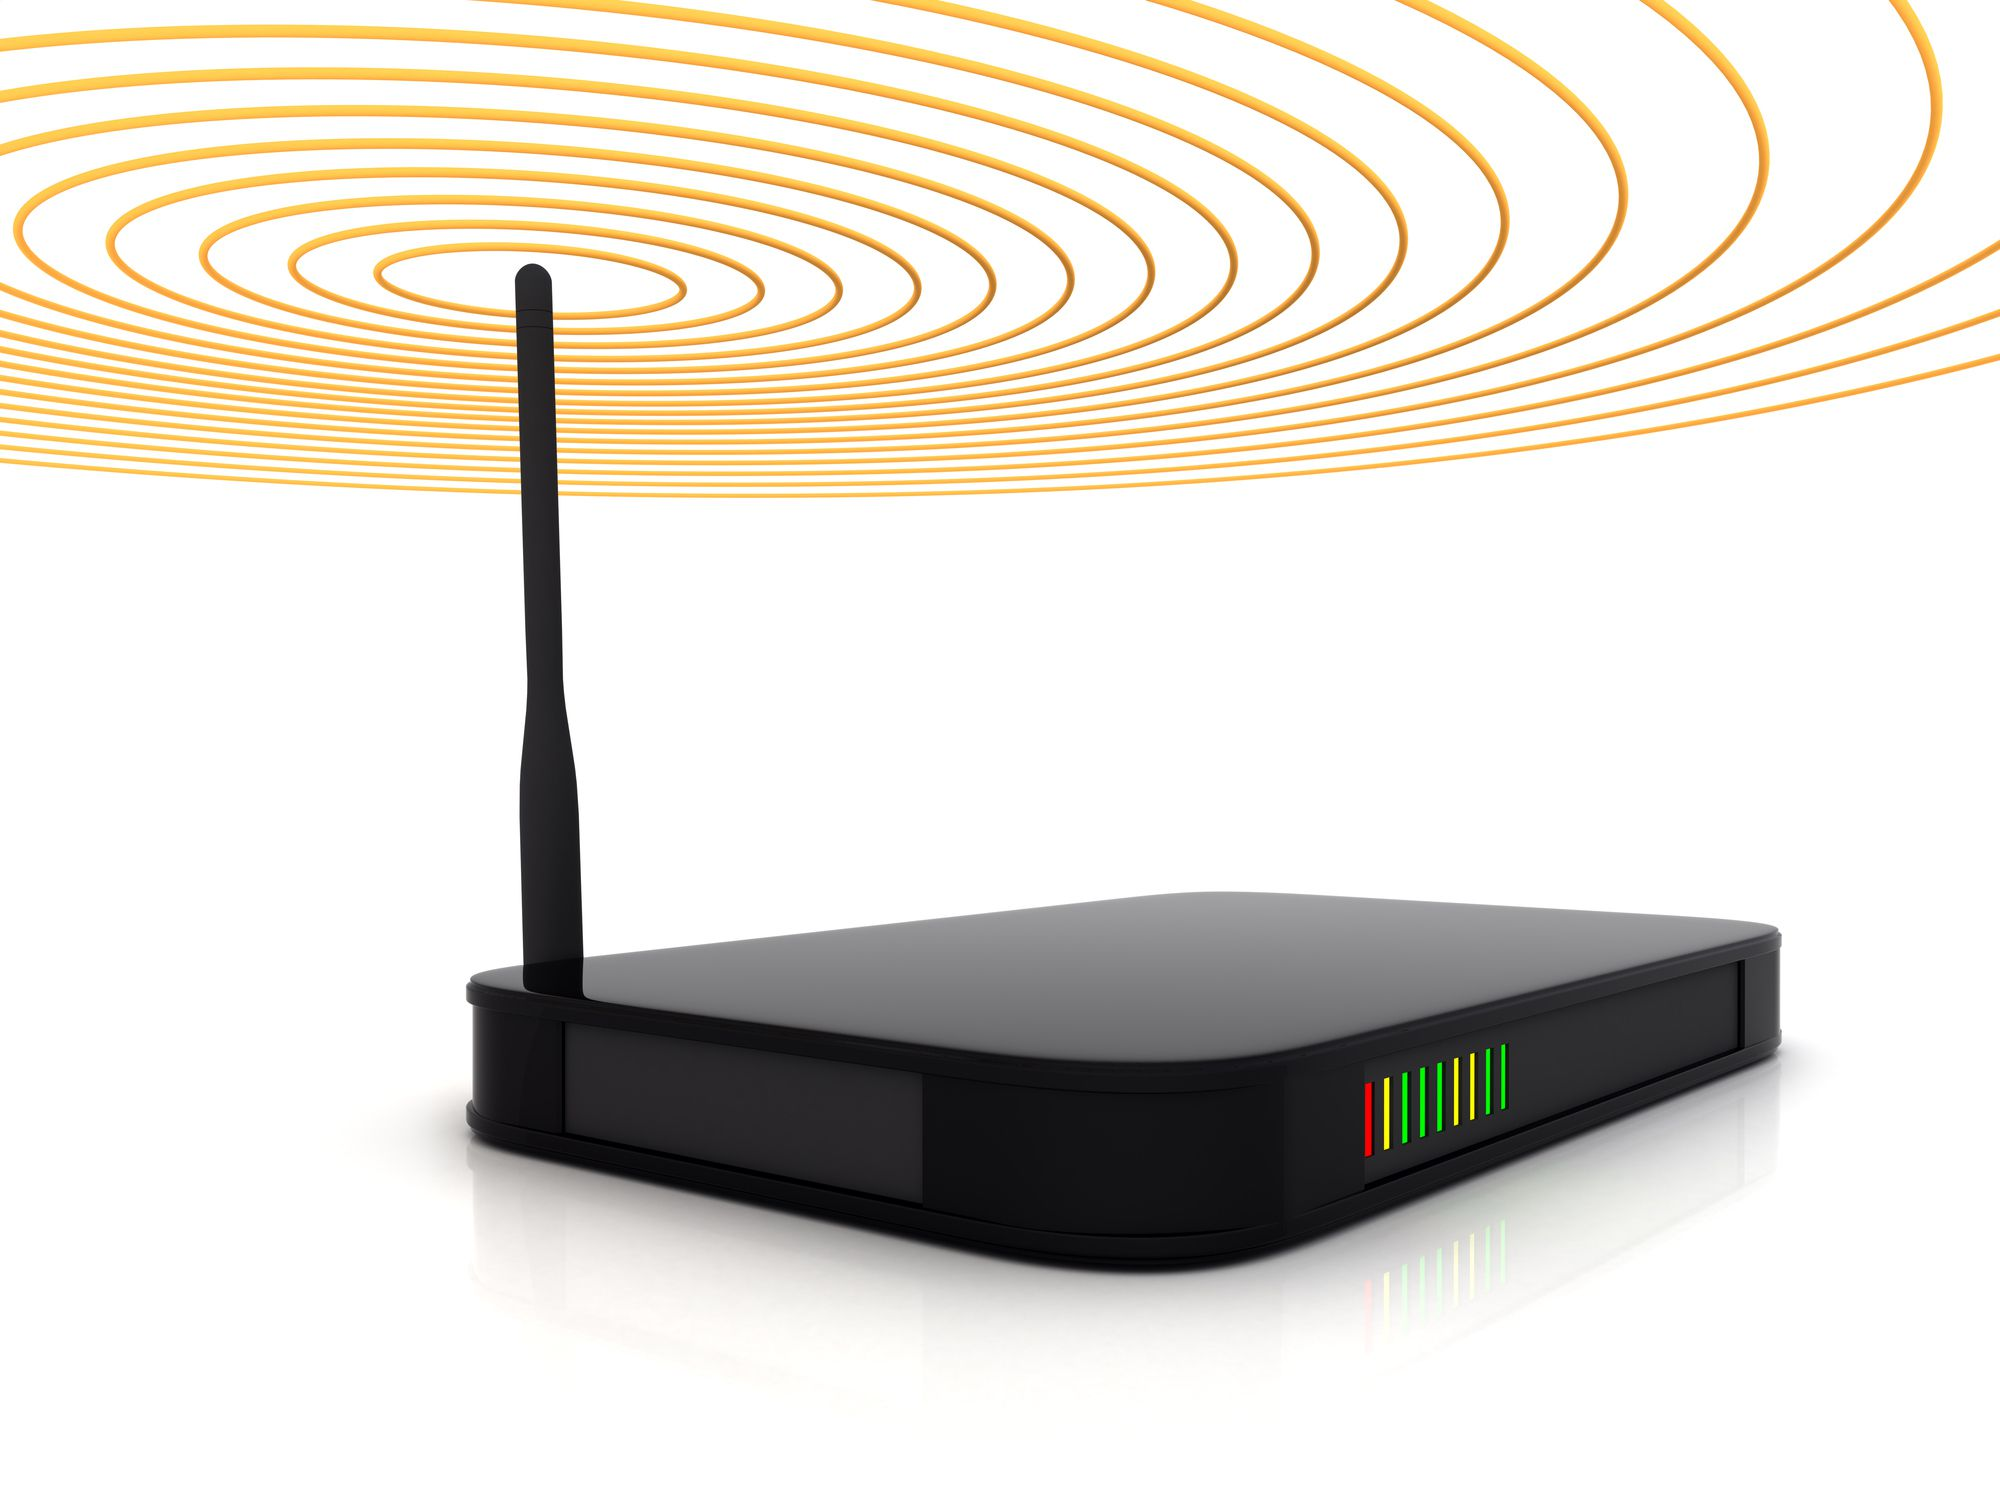 troubleshooting home network router problems